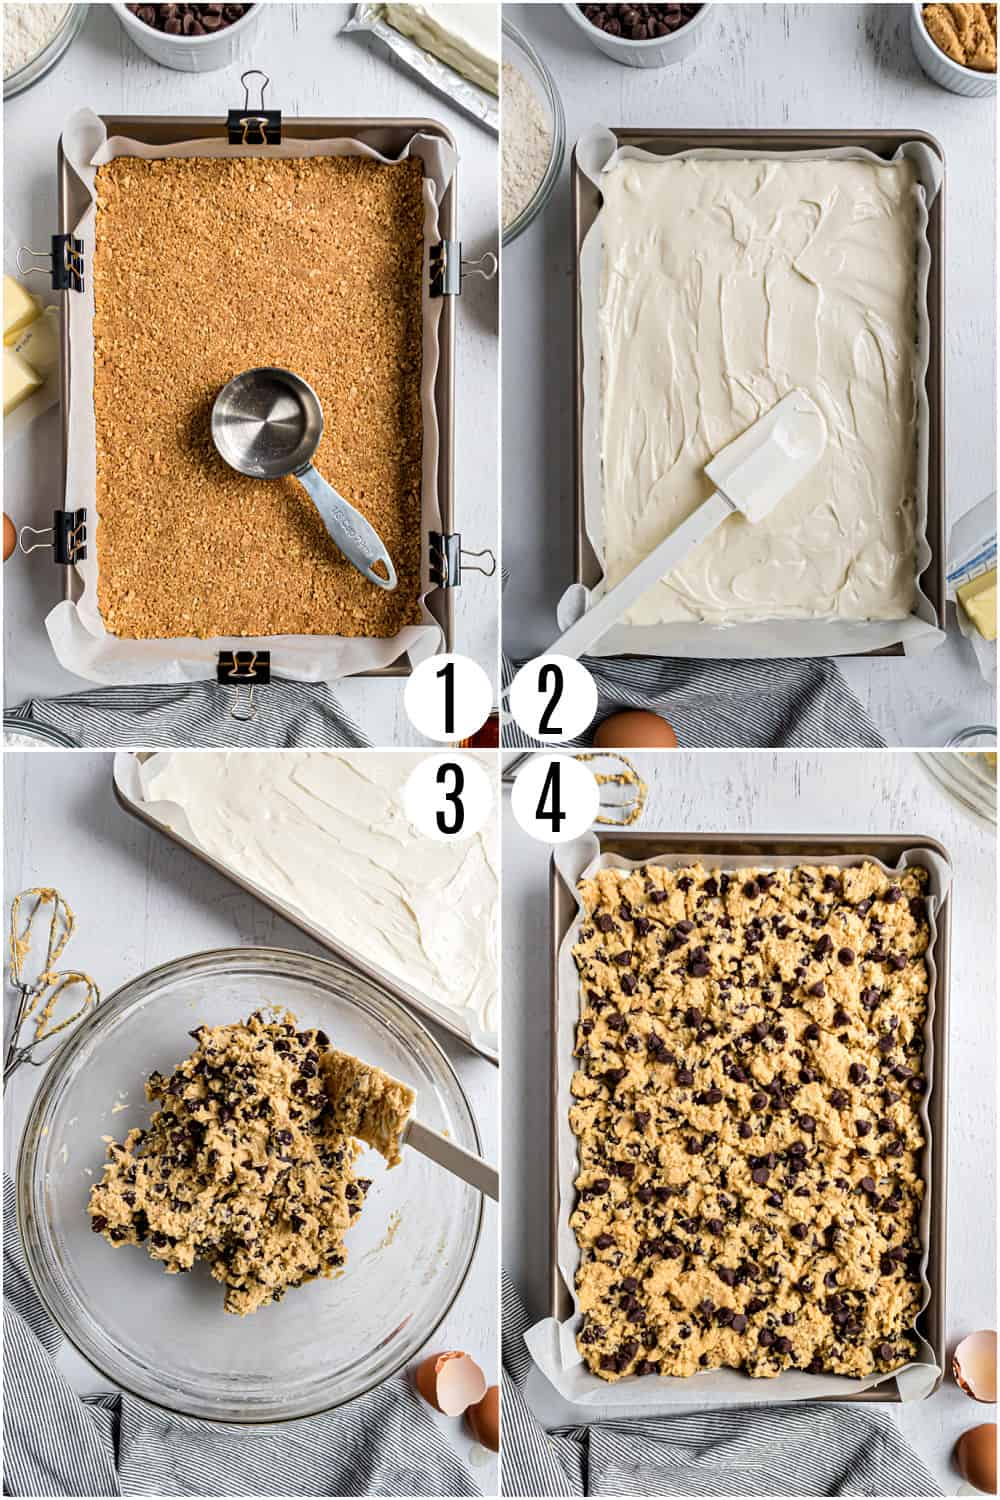 Step by step photos showing how to make chocolate chip cheesecake bars.